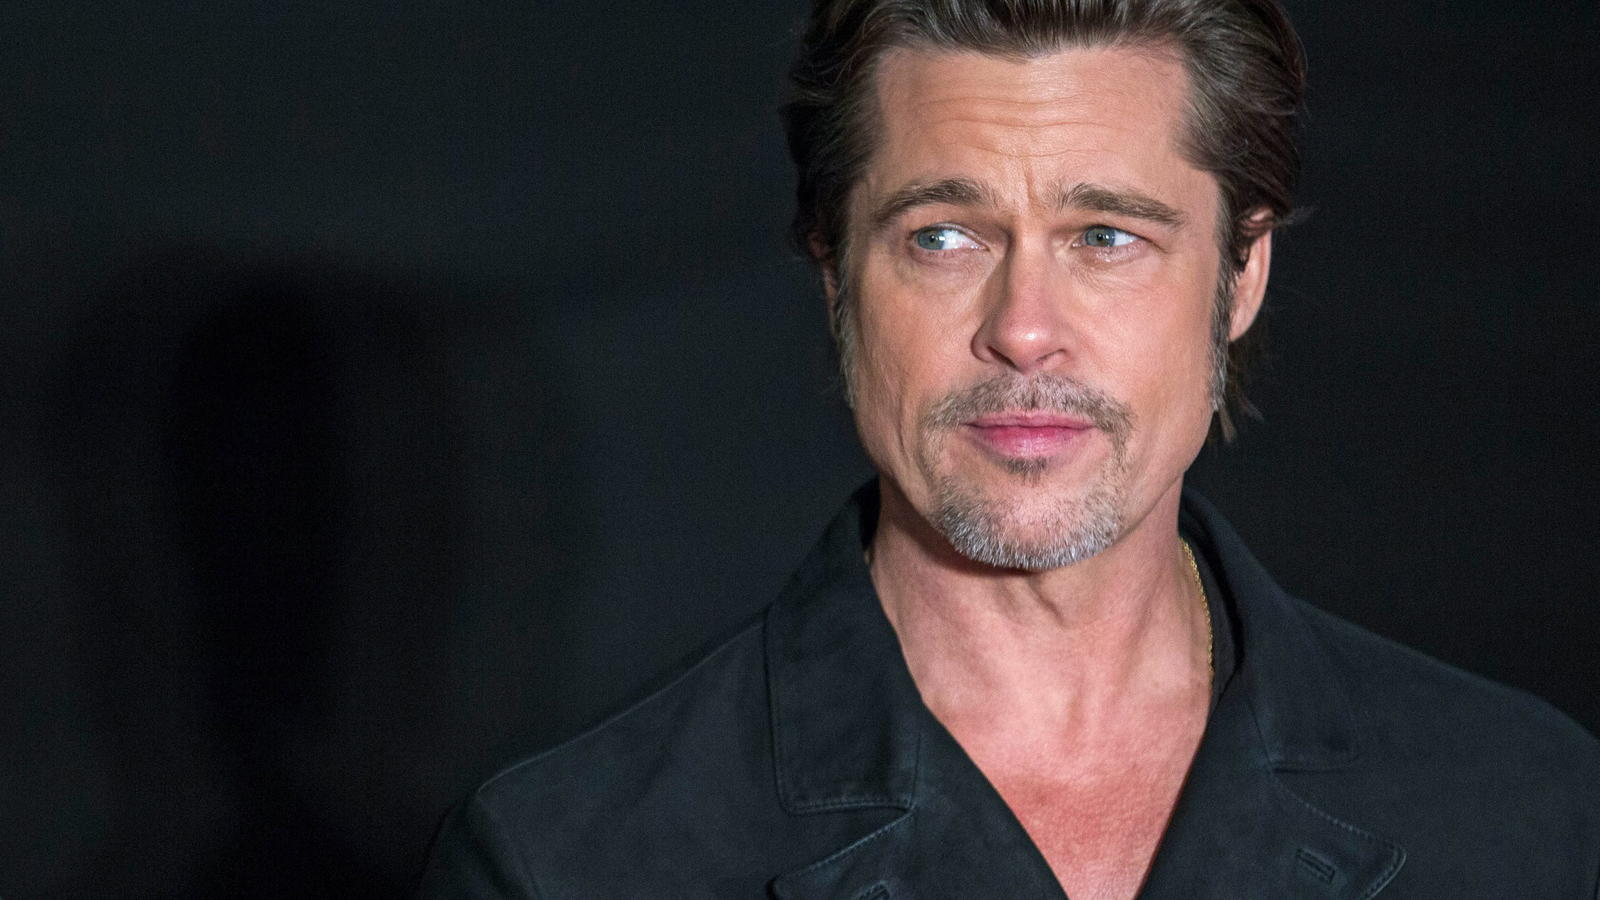 FILE - epa04490519 US actor and cast member Brad Pitt attends the premiere of 'Fury' in Tokyo, Japan, 15 November 2014. EPA/CHRISTOPHER JUE EDITORIAL USE ONLY/NO SALES +++(c) dpa - Bildfunk+++